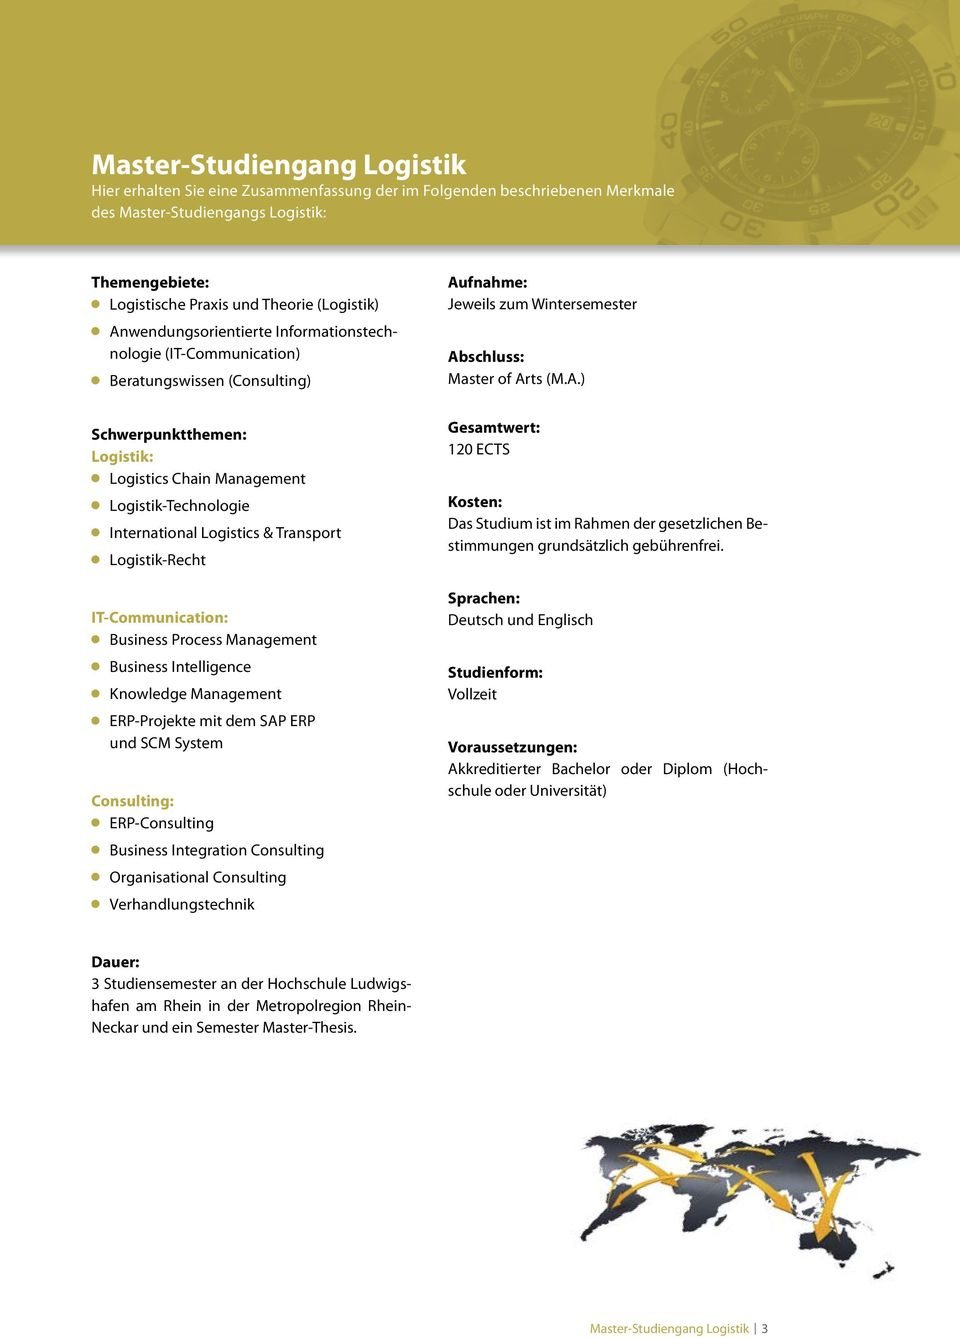 Transport Logistik-Recht IT-Communication: Business Process Management Business Intelligence Knowledge Management ERP-Projekte mit dem SAP ERP und SCM System Consulting: ERP-Consulting Business